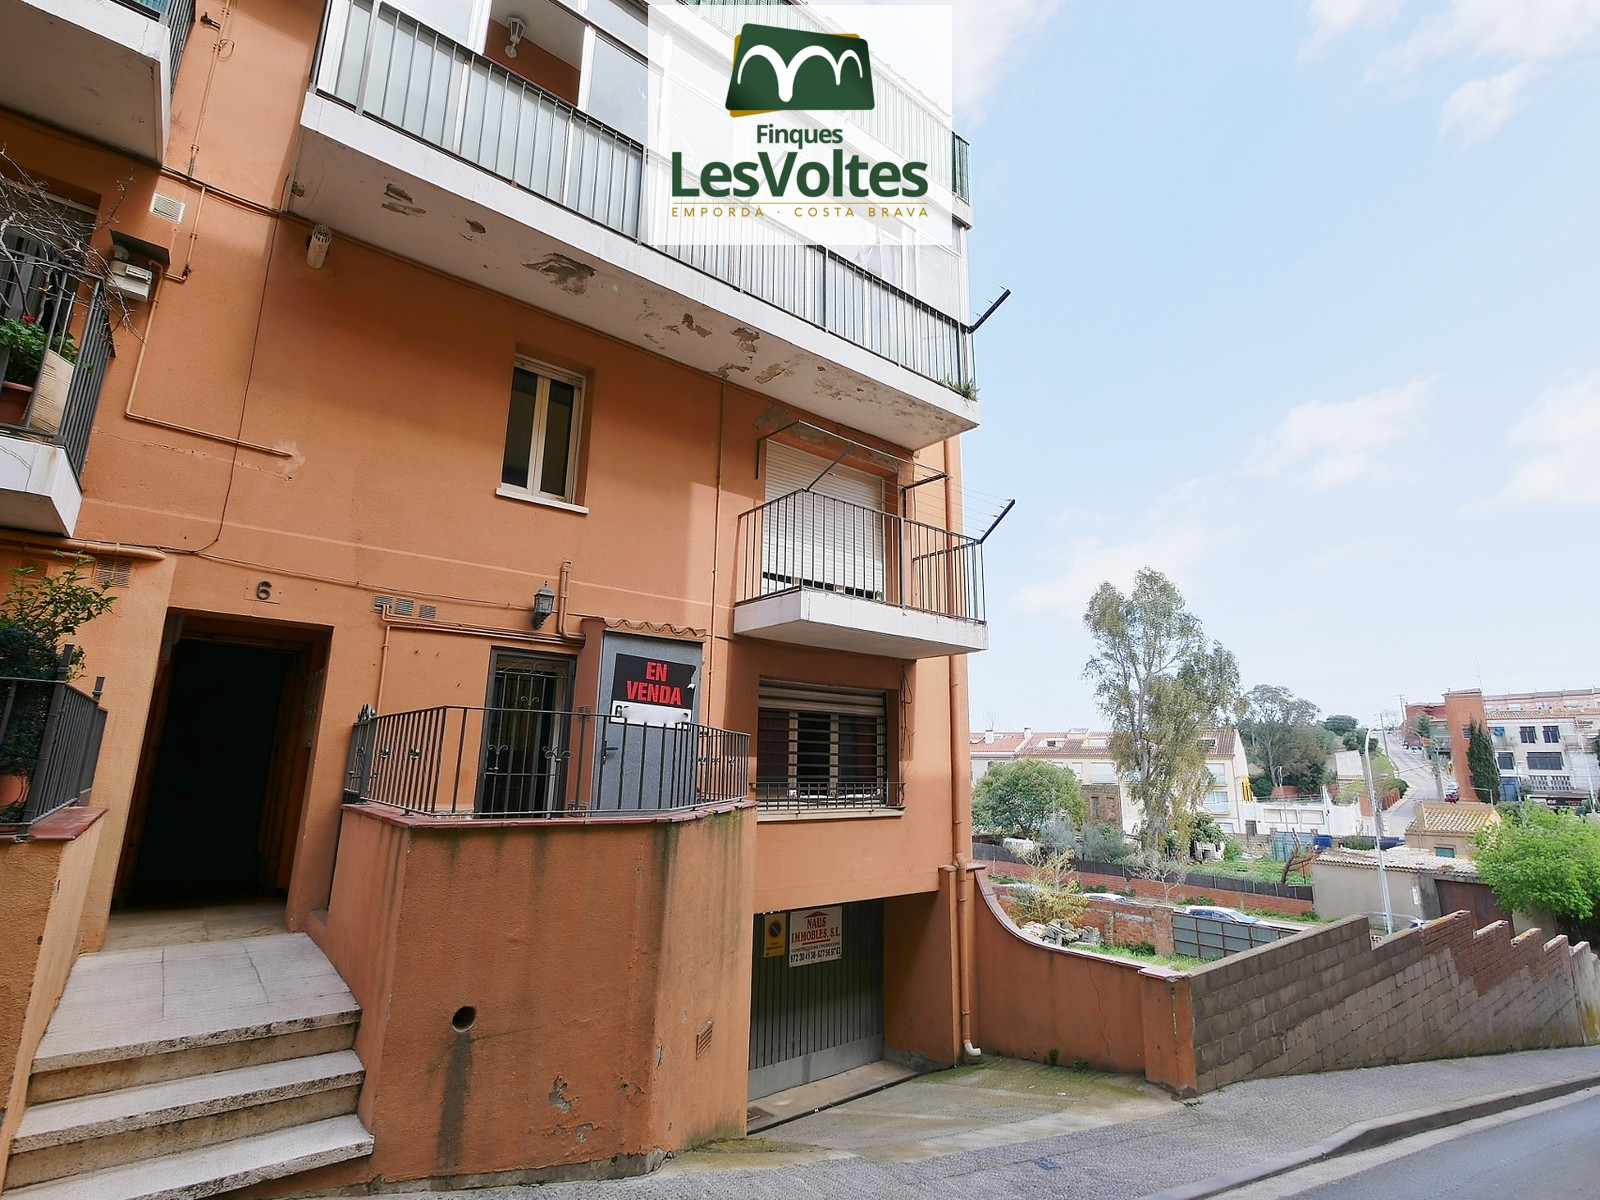 3 BEDROOM DUPLEX APARTMENT FOR INTERIOR SUITABILITY FOR SALE IN PALAFRUGELL.